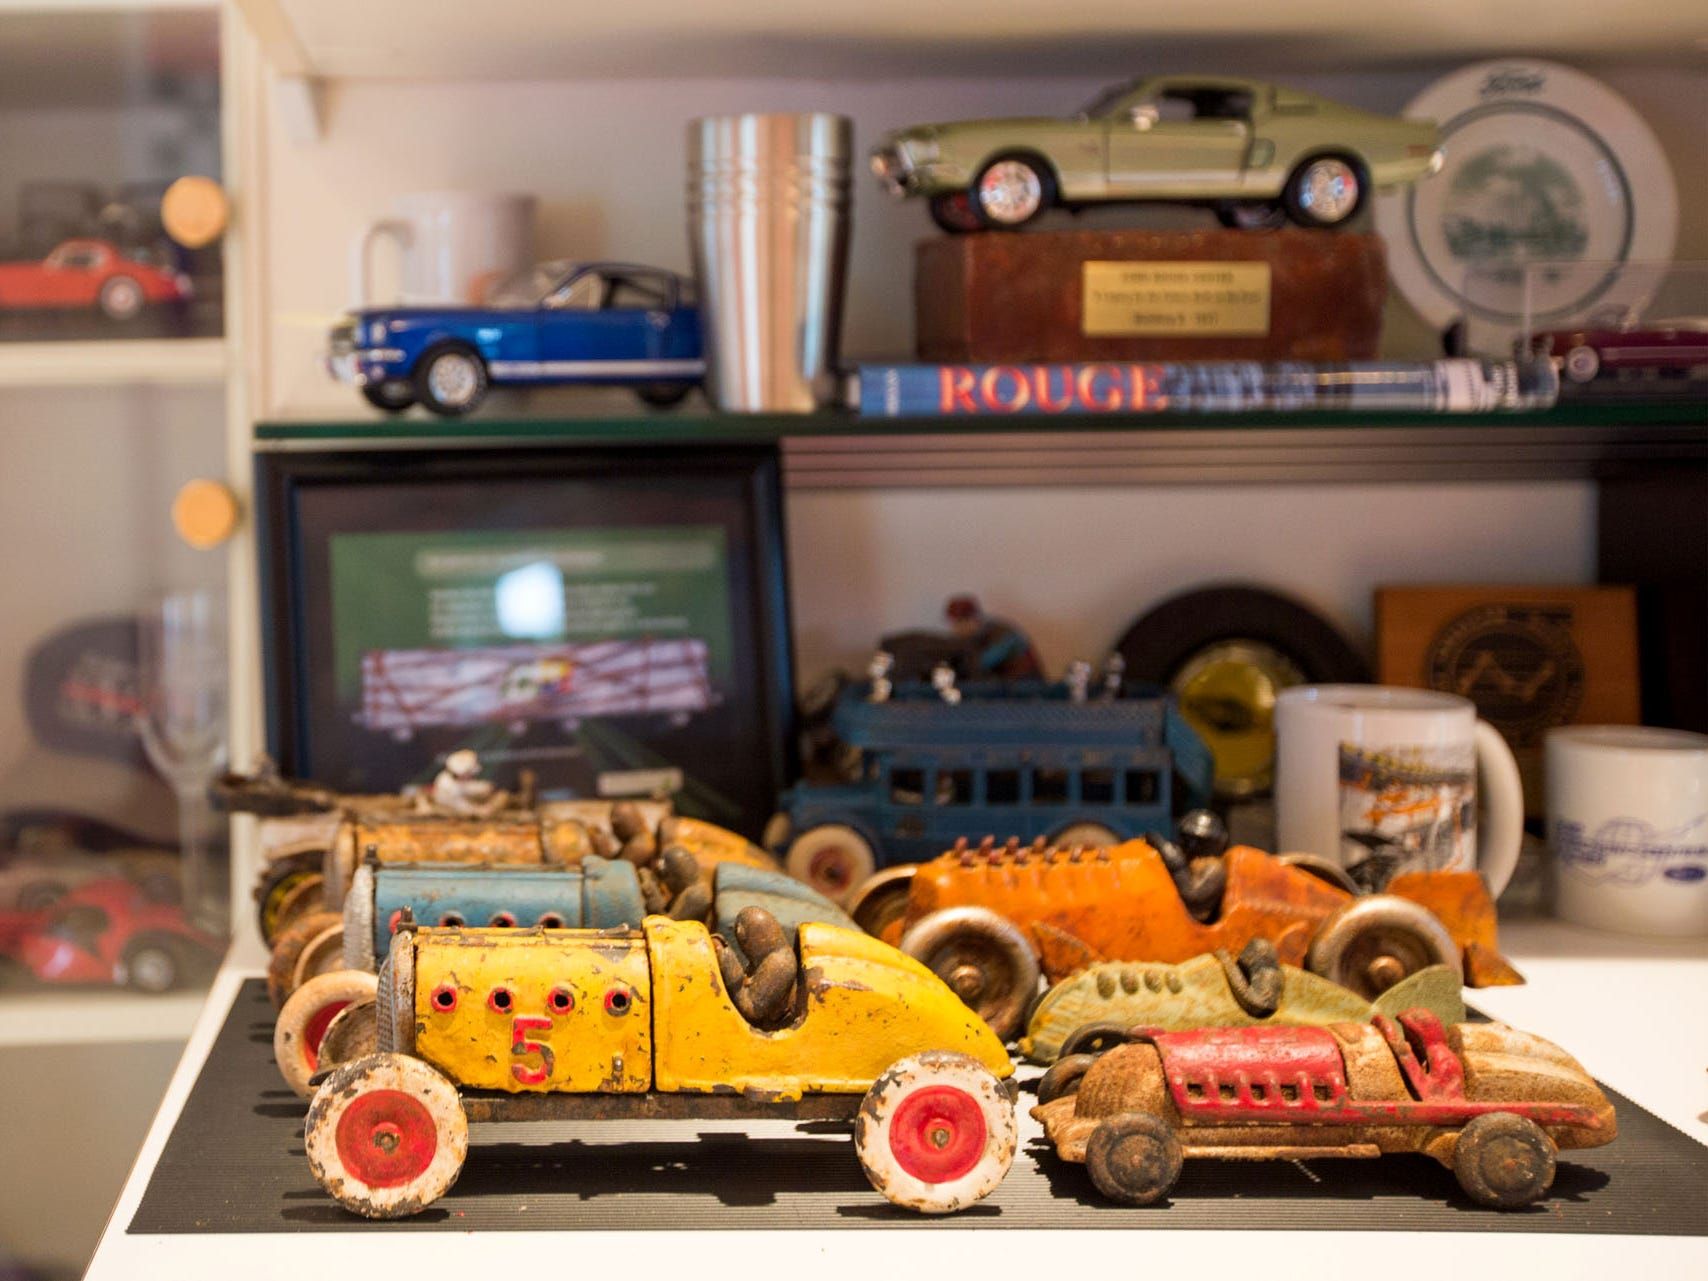 Garage display space shows car models the owner's been making since a child. He also does lavish restorations of antique children's pedal cars, including a highly detailed Lincoln Dual Cowl Phaeton six-wheel design